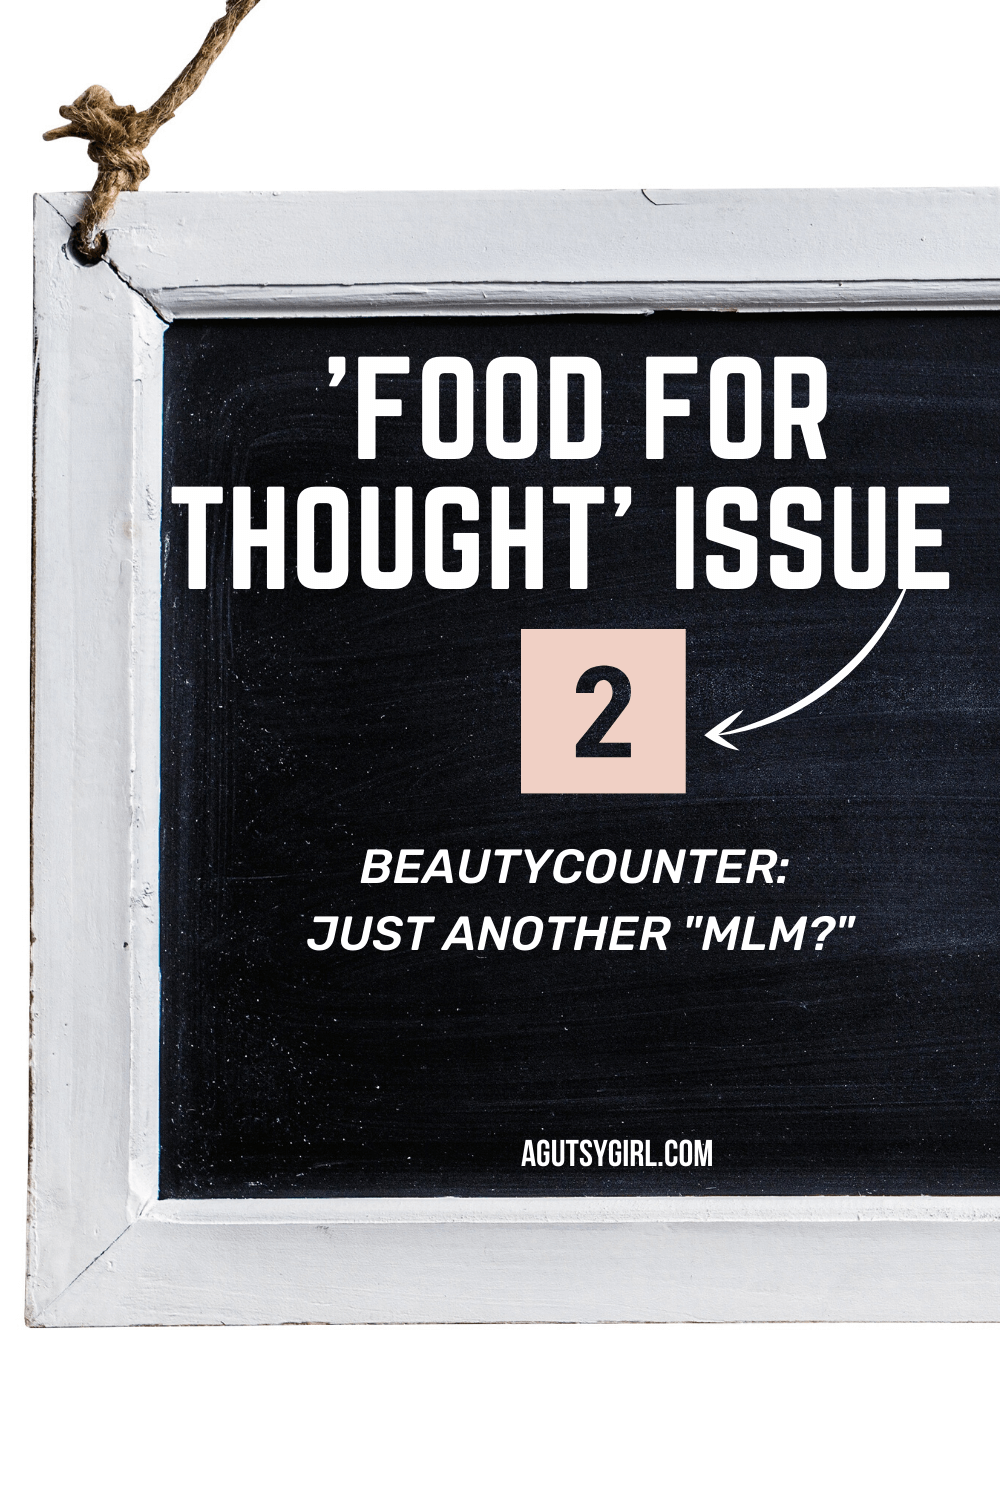 Food for Thought Issue 2 Beautycounter just another MLM agutsygirl.com #beautycounter #athomebusiness #skincare #makeup